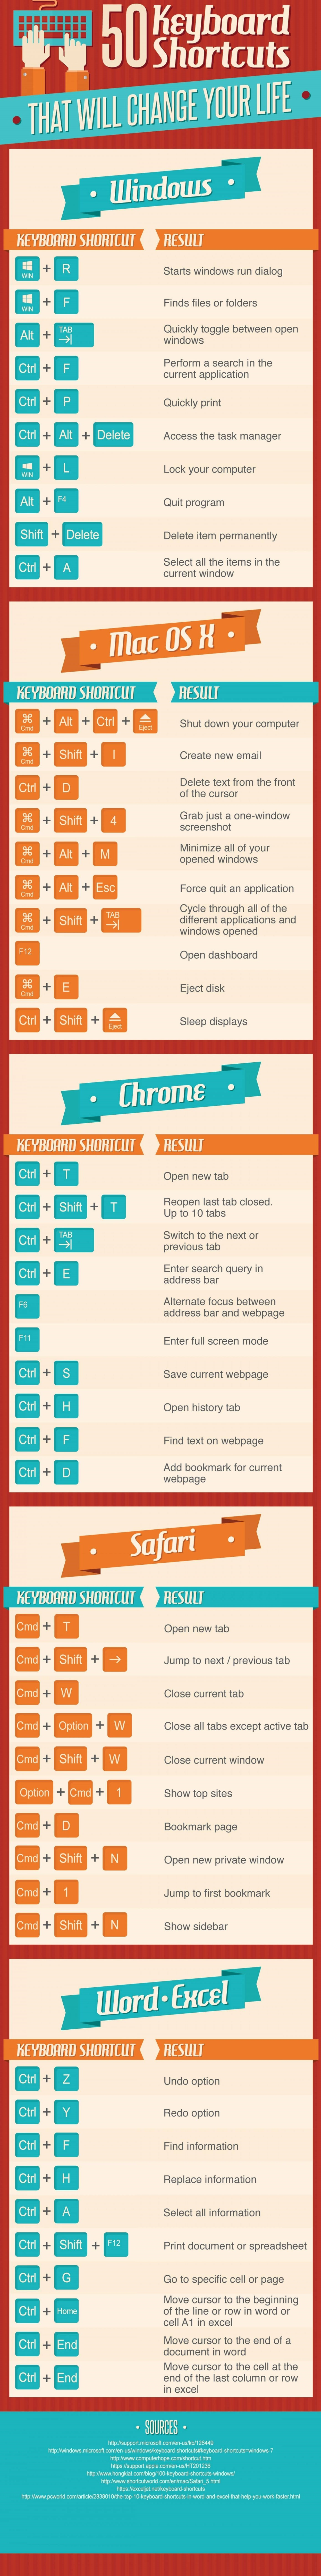 50 Keyboard Shortcuts That Will Change Your Life